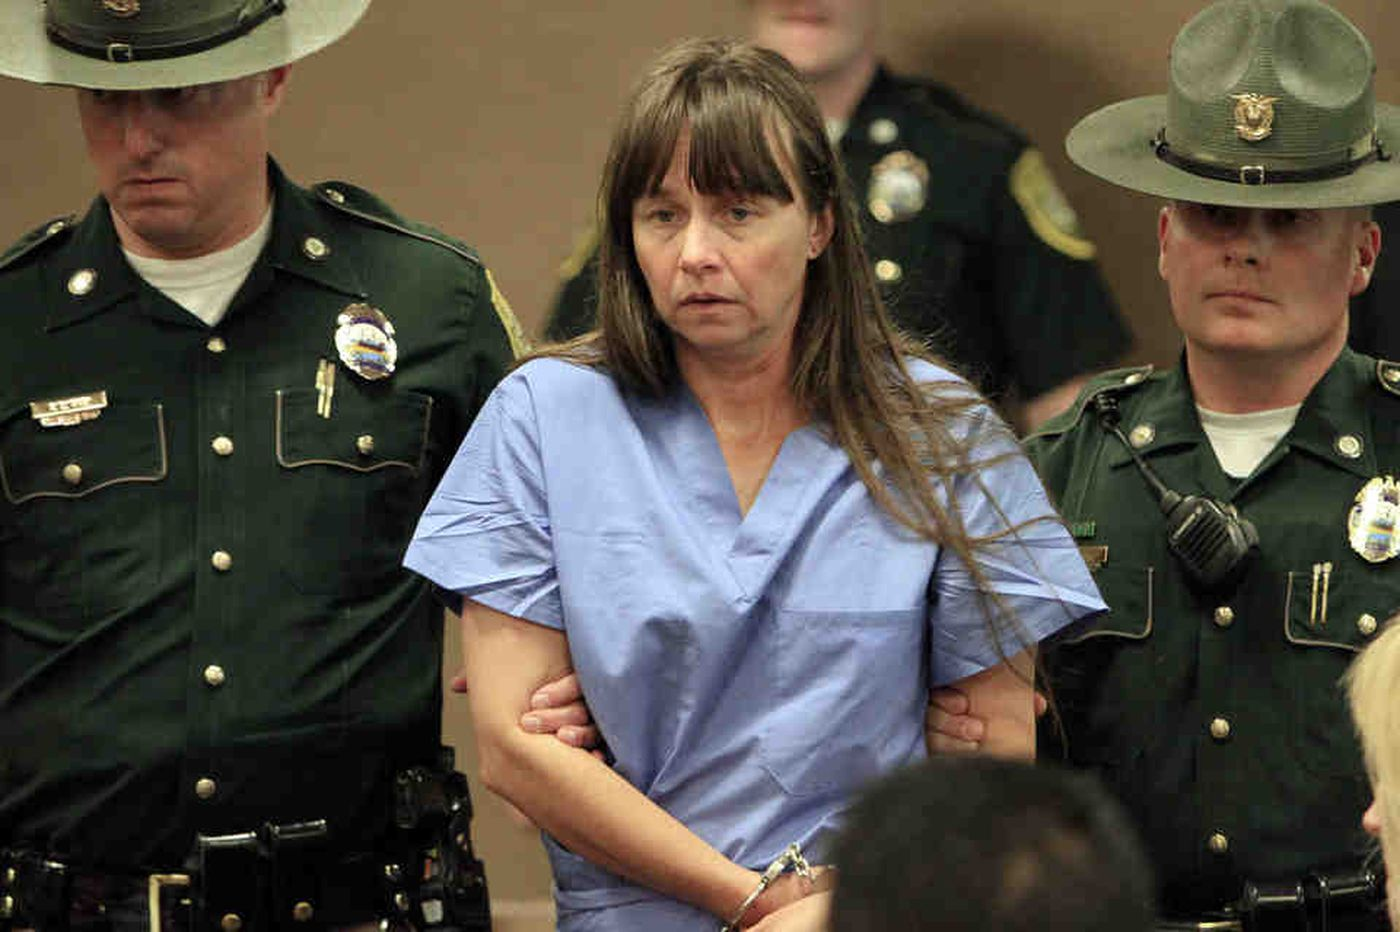 Lawyer: Mom wanted heaven for son, self